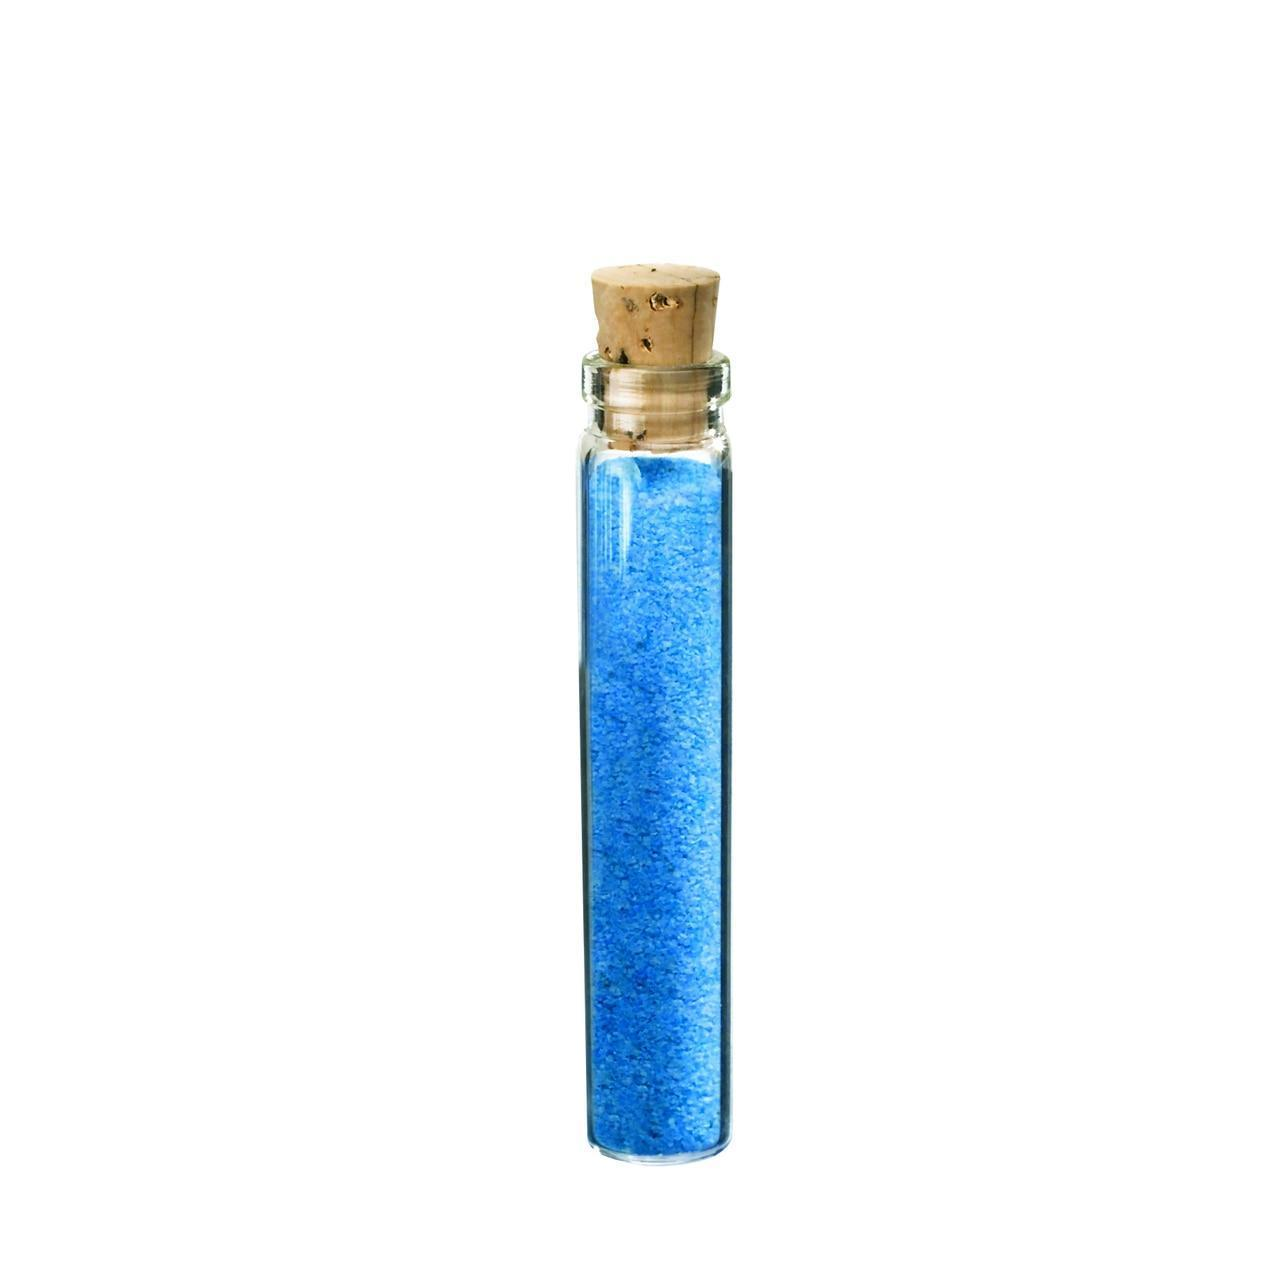 Quality Aromatherapy & Essential Oils Containers Glass Corked Vials v4510B01 for sale